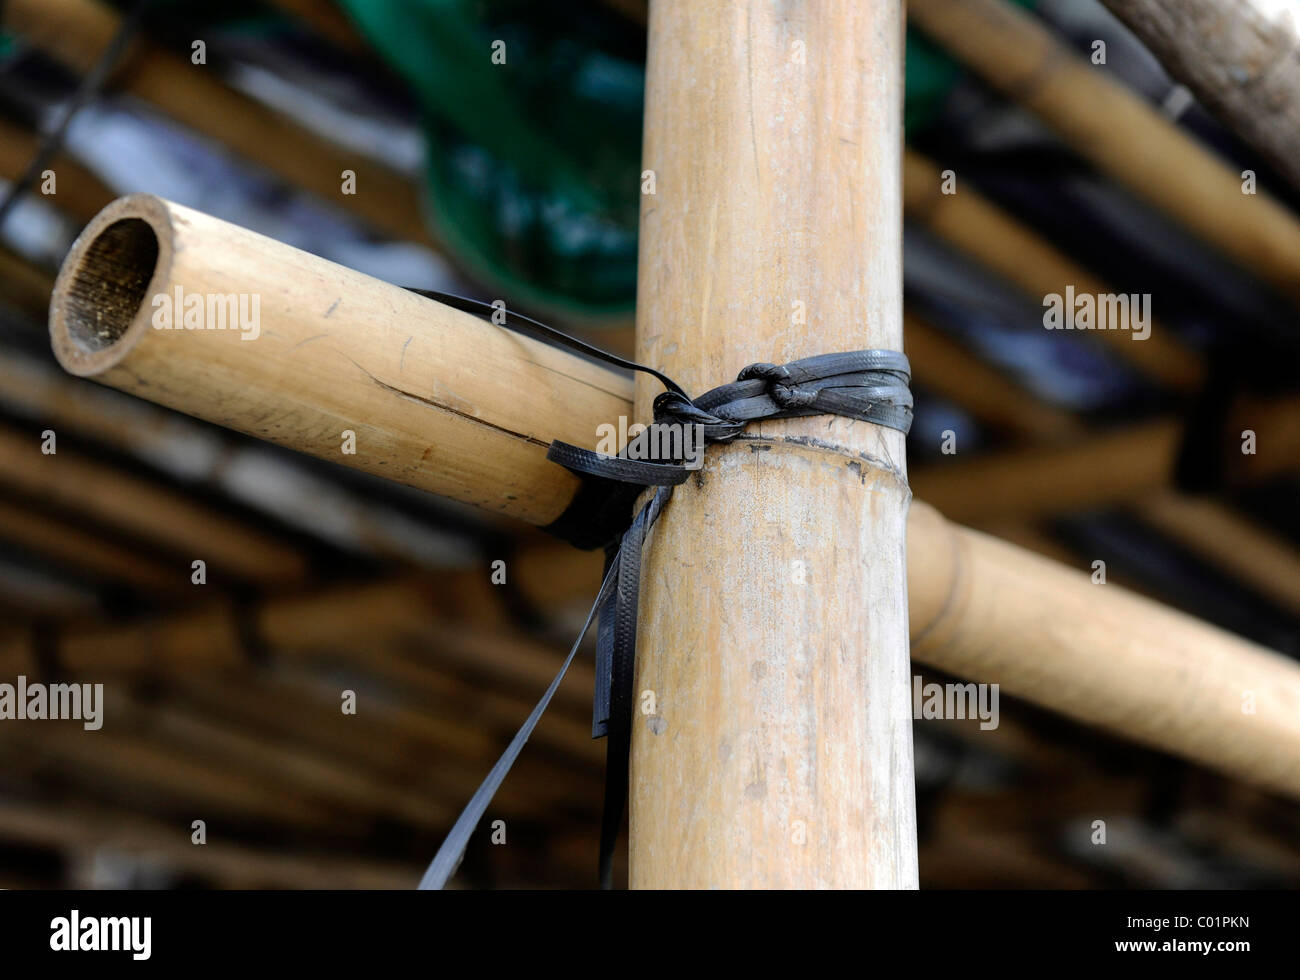 Detail of bamboo scaffolding, Macao, China, Asia - Stock Image